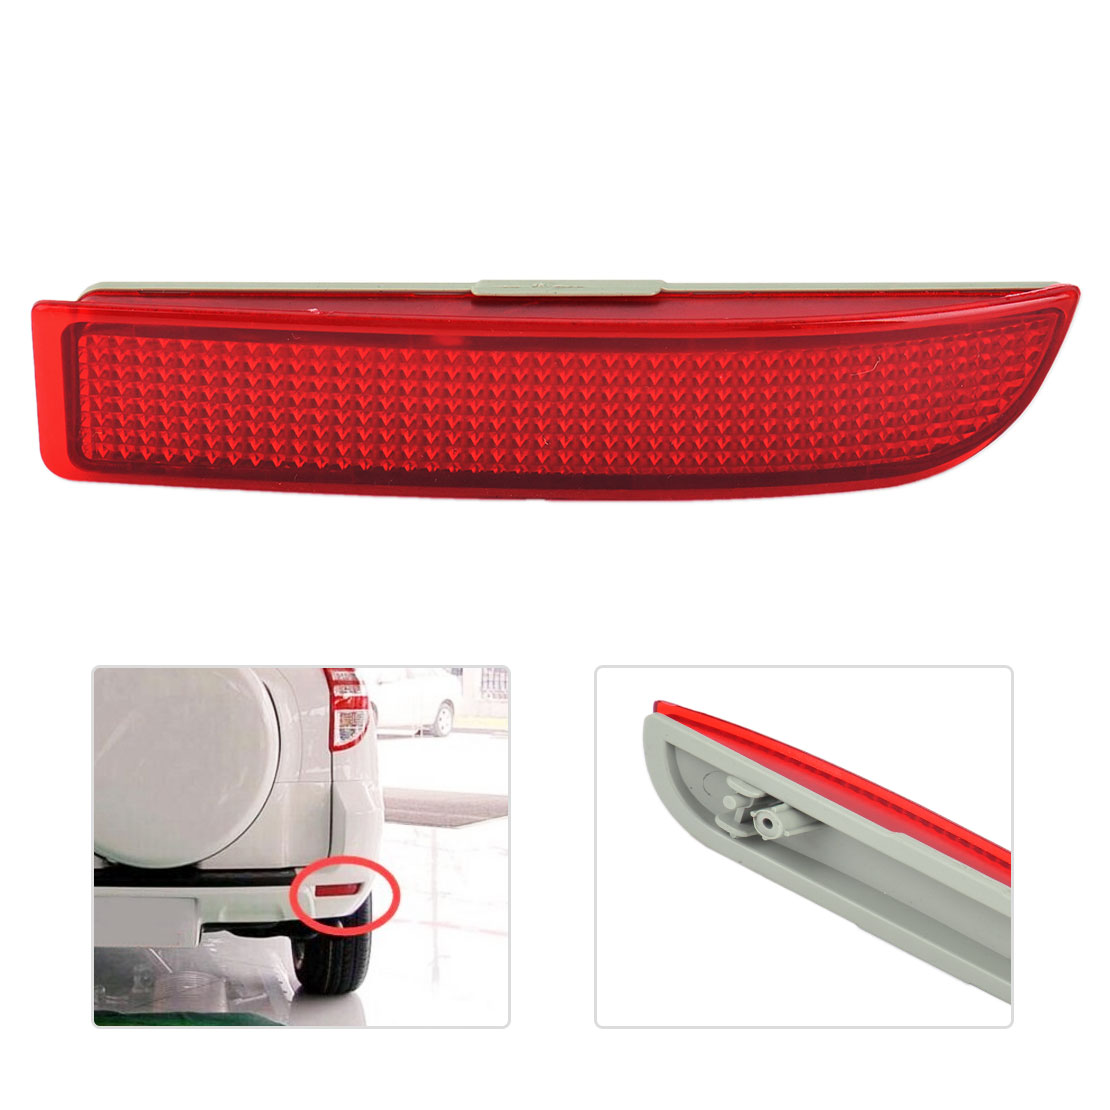 beler 81920-0R020 New Plastic Right Bumper Rear Light Lamp Cover Reflector fit for Toyota RAV4 2009 2010 2011 2012 beler rear left side fog light bumper lamp reflector sl693 lh fit for mitsubishi outlander 2007 2008 2009 2010 2011 2012 2013